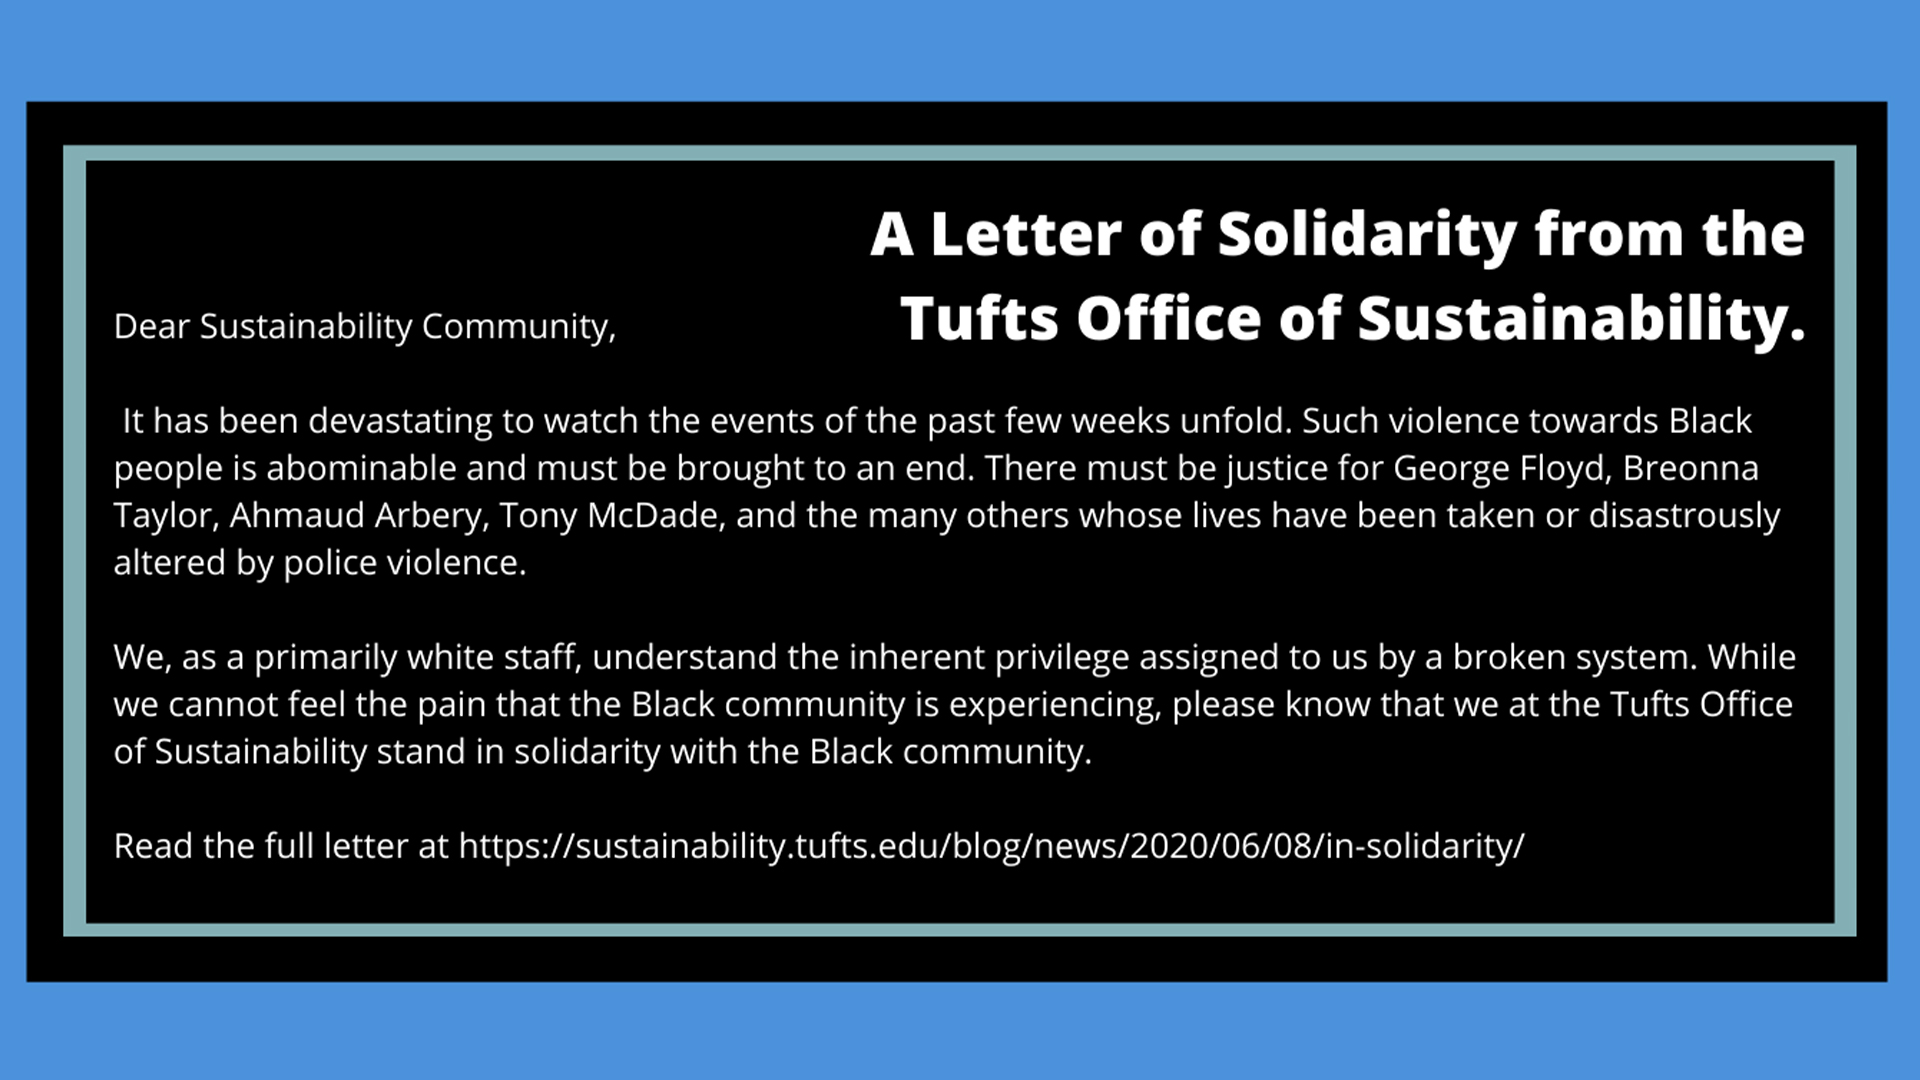 Letter of Solidarity from the Tufts Office of Sustainability